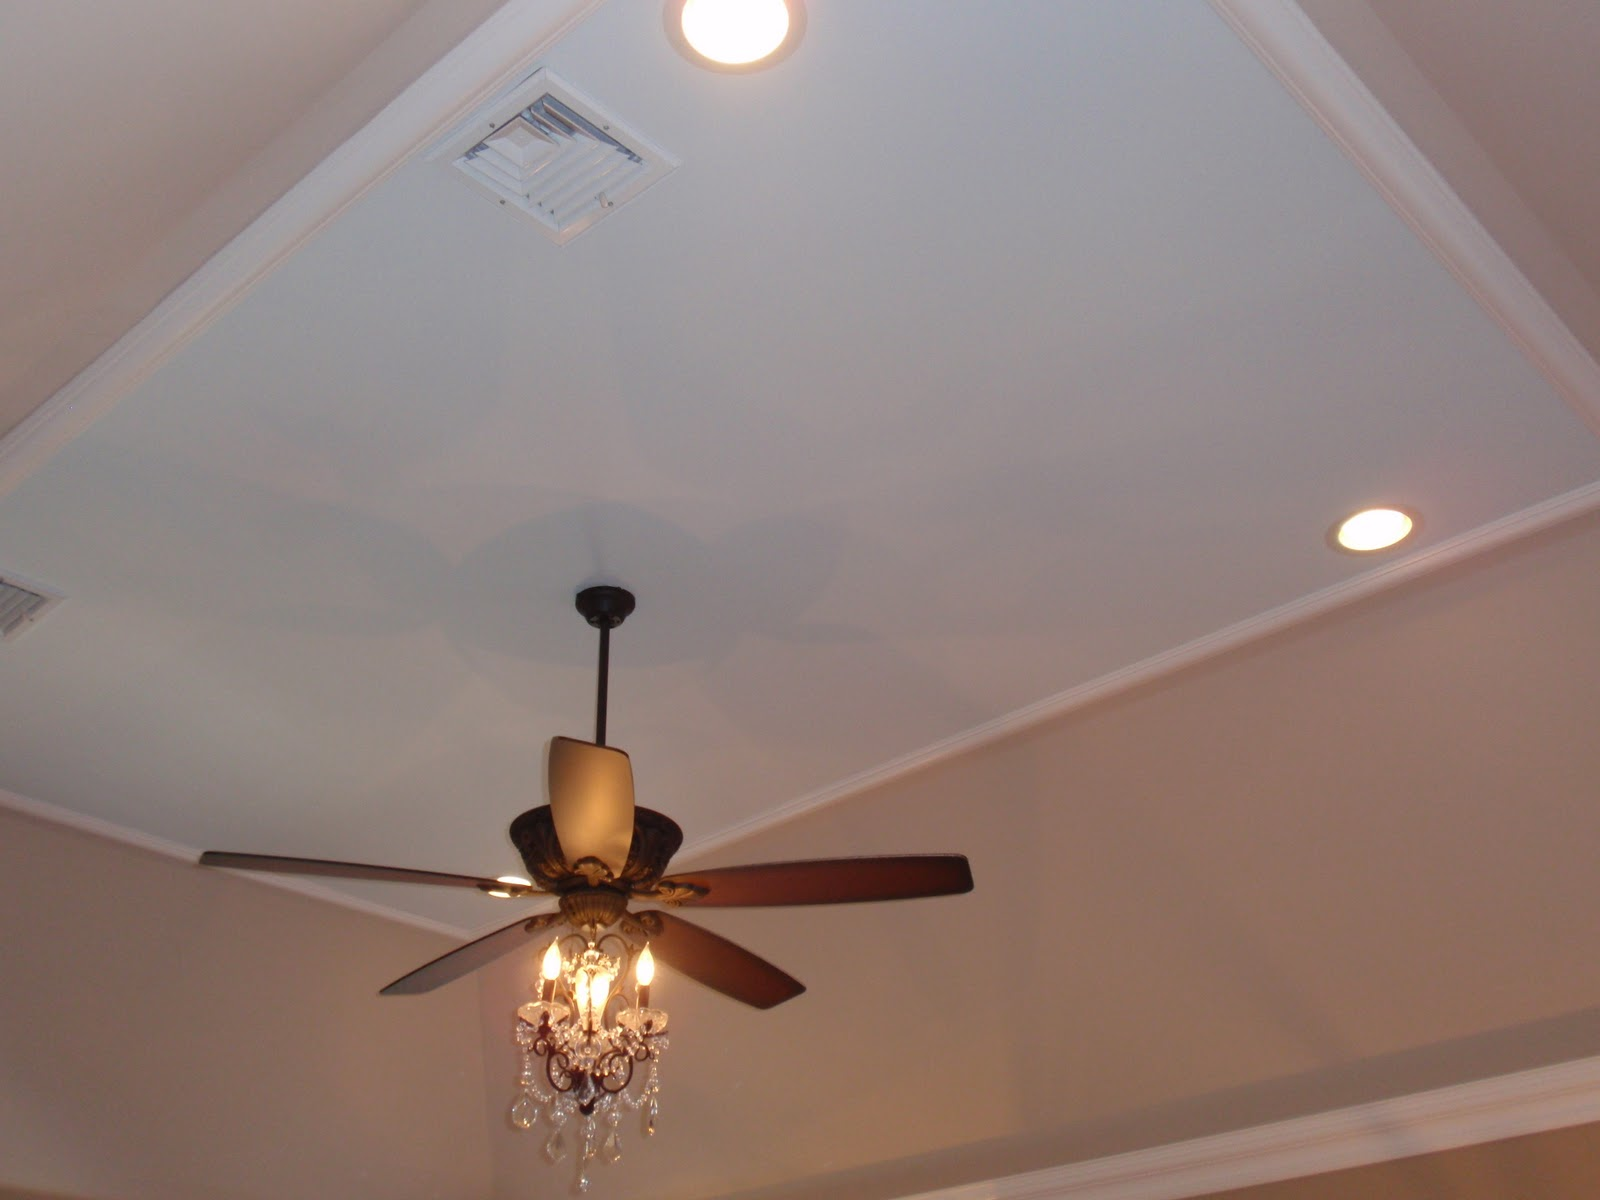 How to purchase crystal chandelier ceiling fans 10 tips warisan style you need to choose a crystal chandelier ceiling fan aloadofball Images